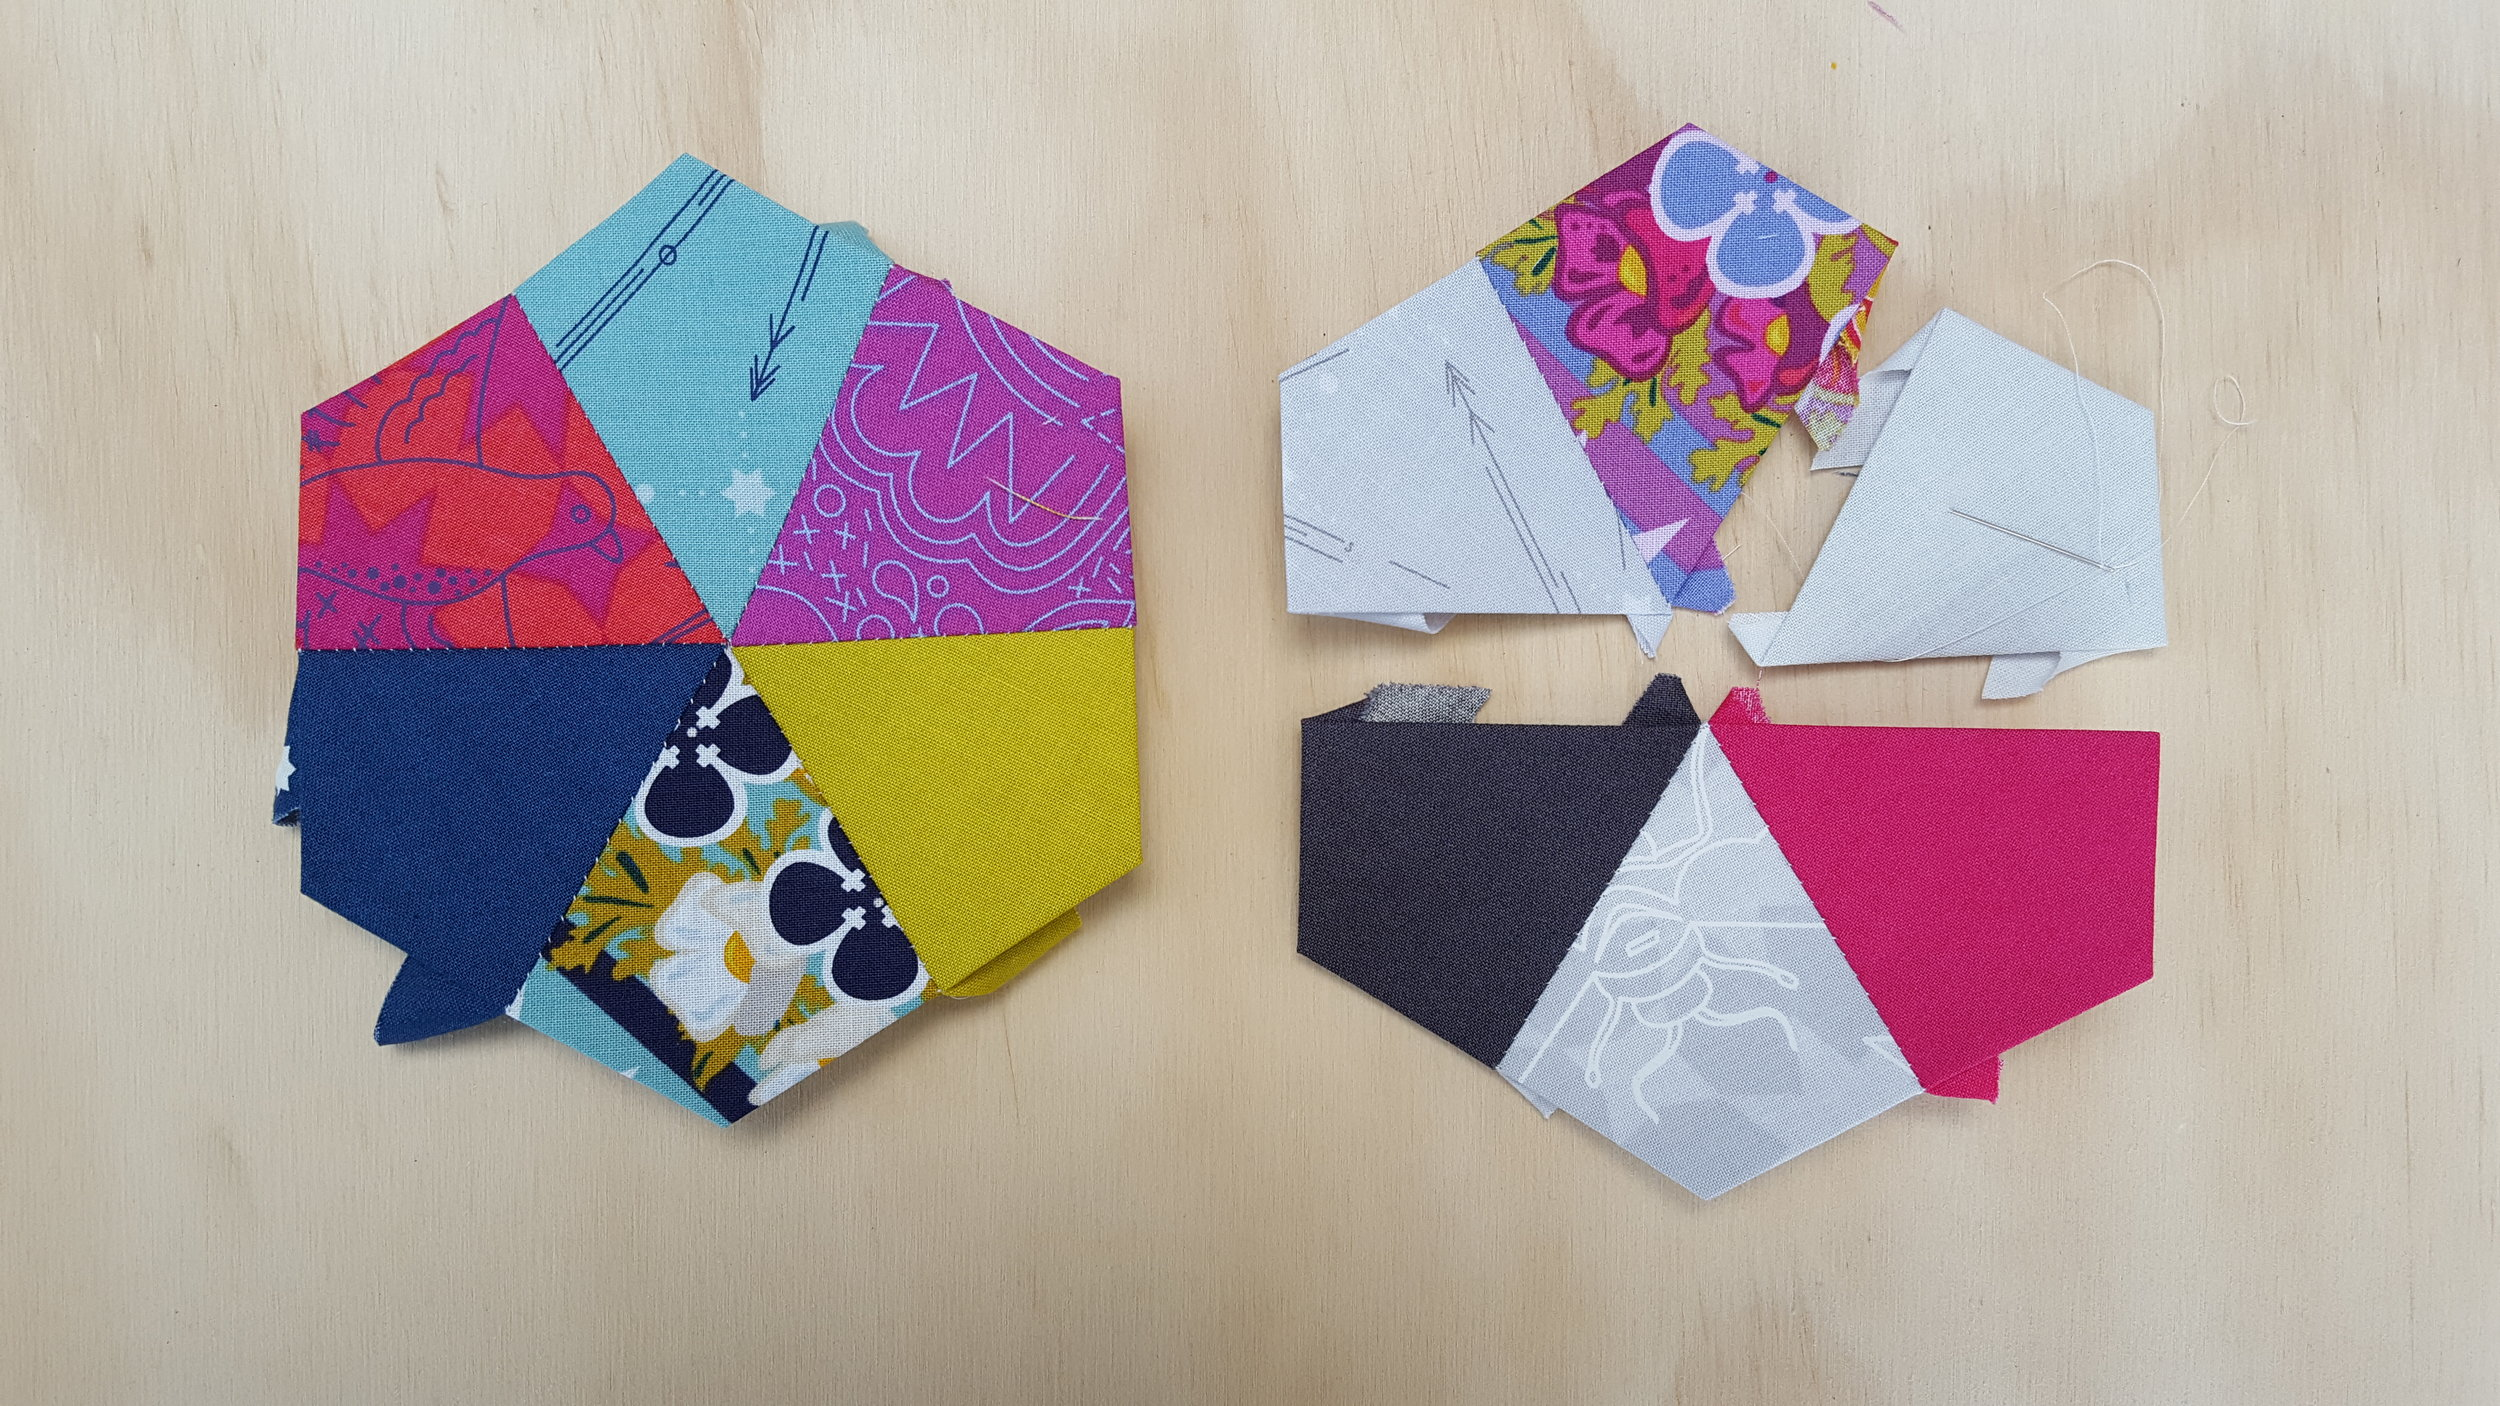 2. Coloured and Mixed Blocks